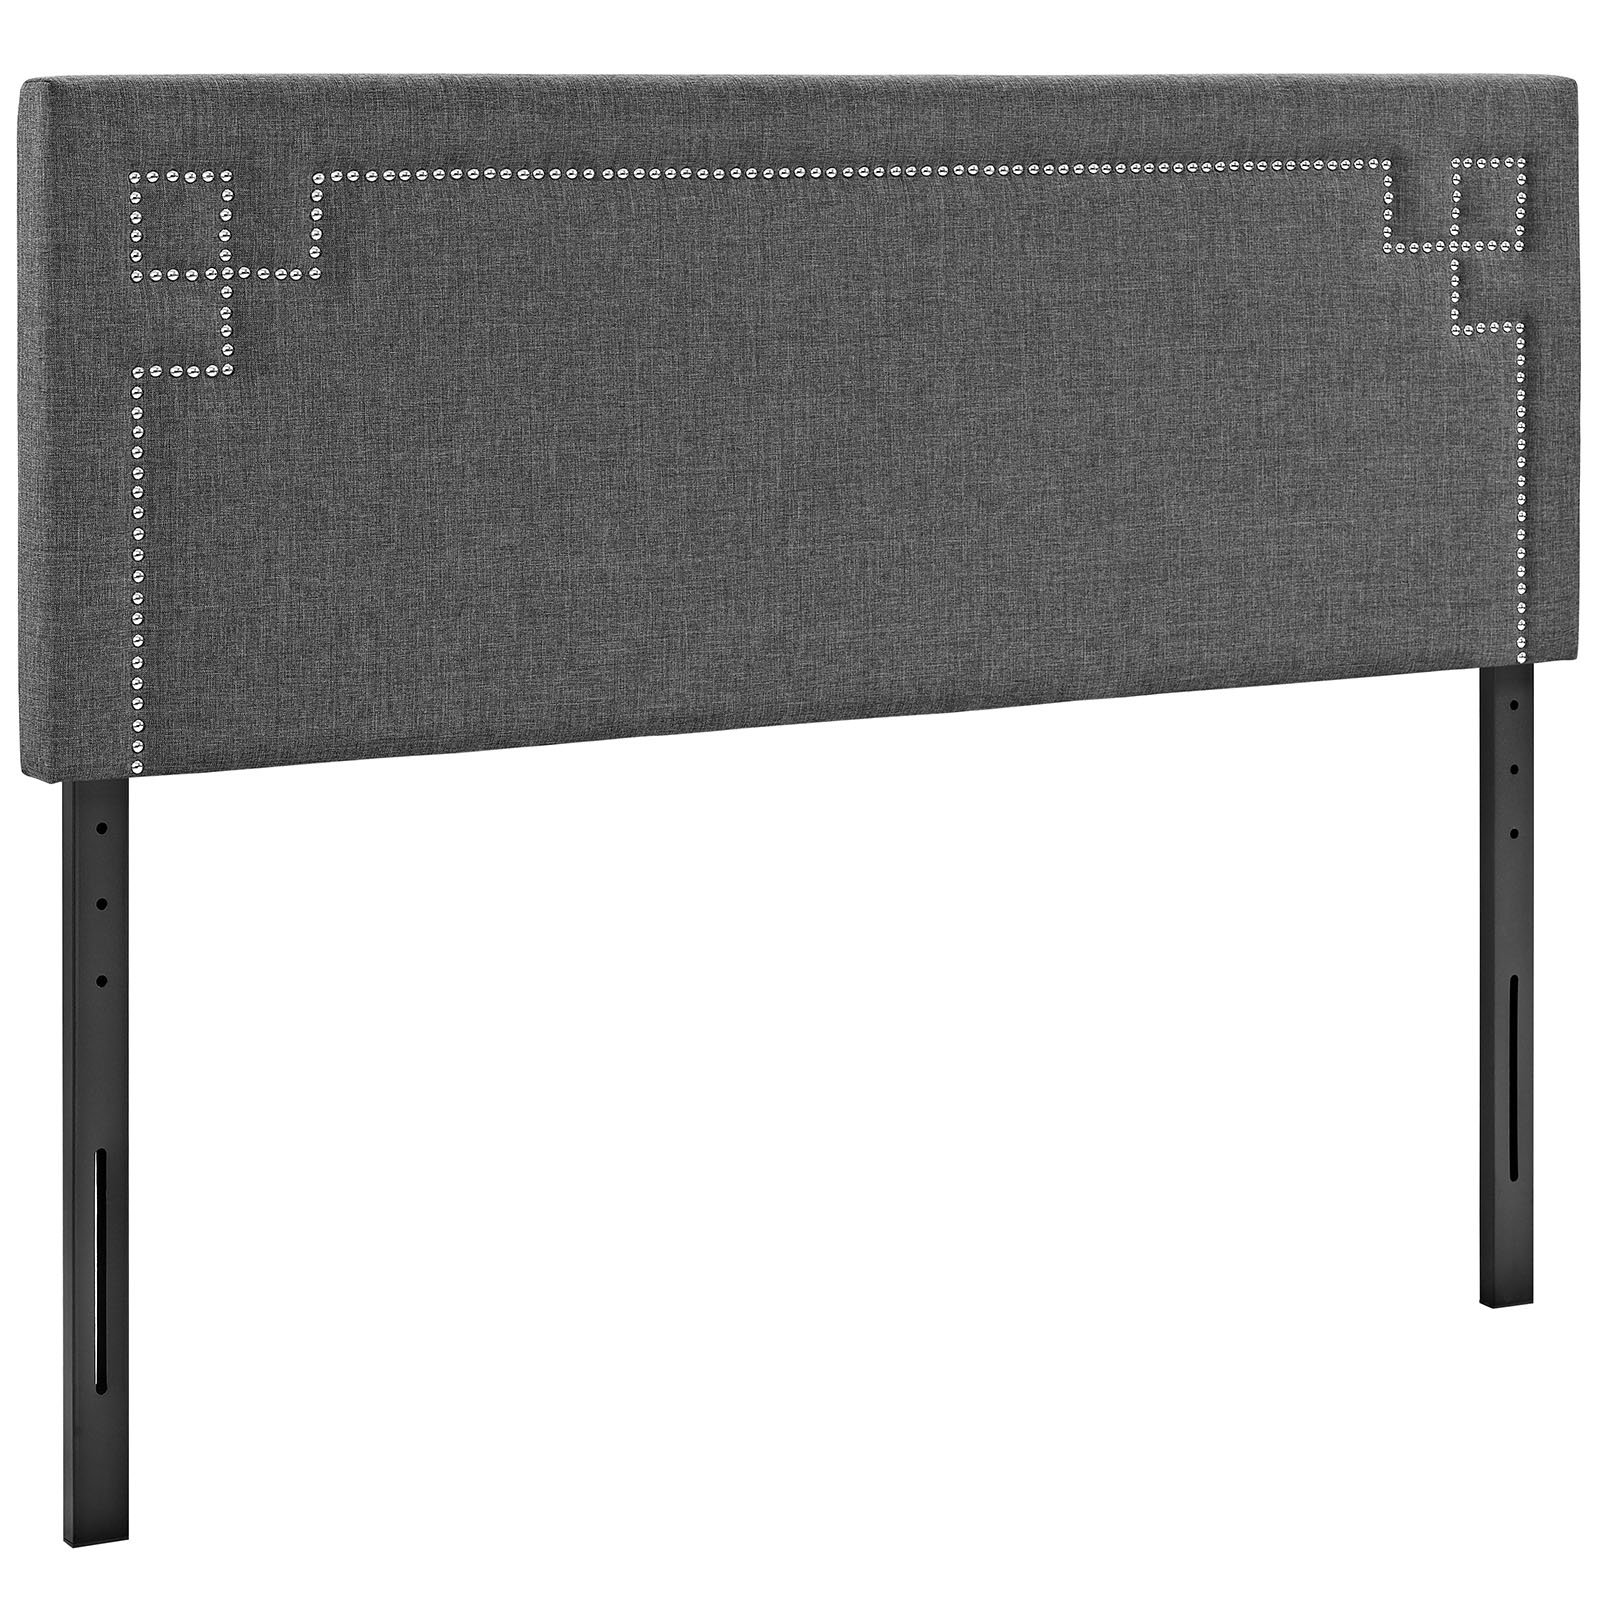 Modway Josie Upholstered Fabric Headboard Full Size With Nailhead Accents In Gray